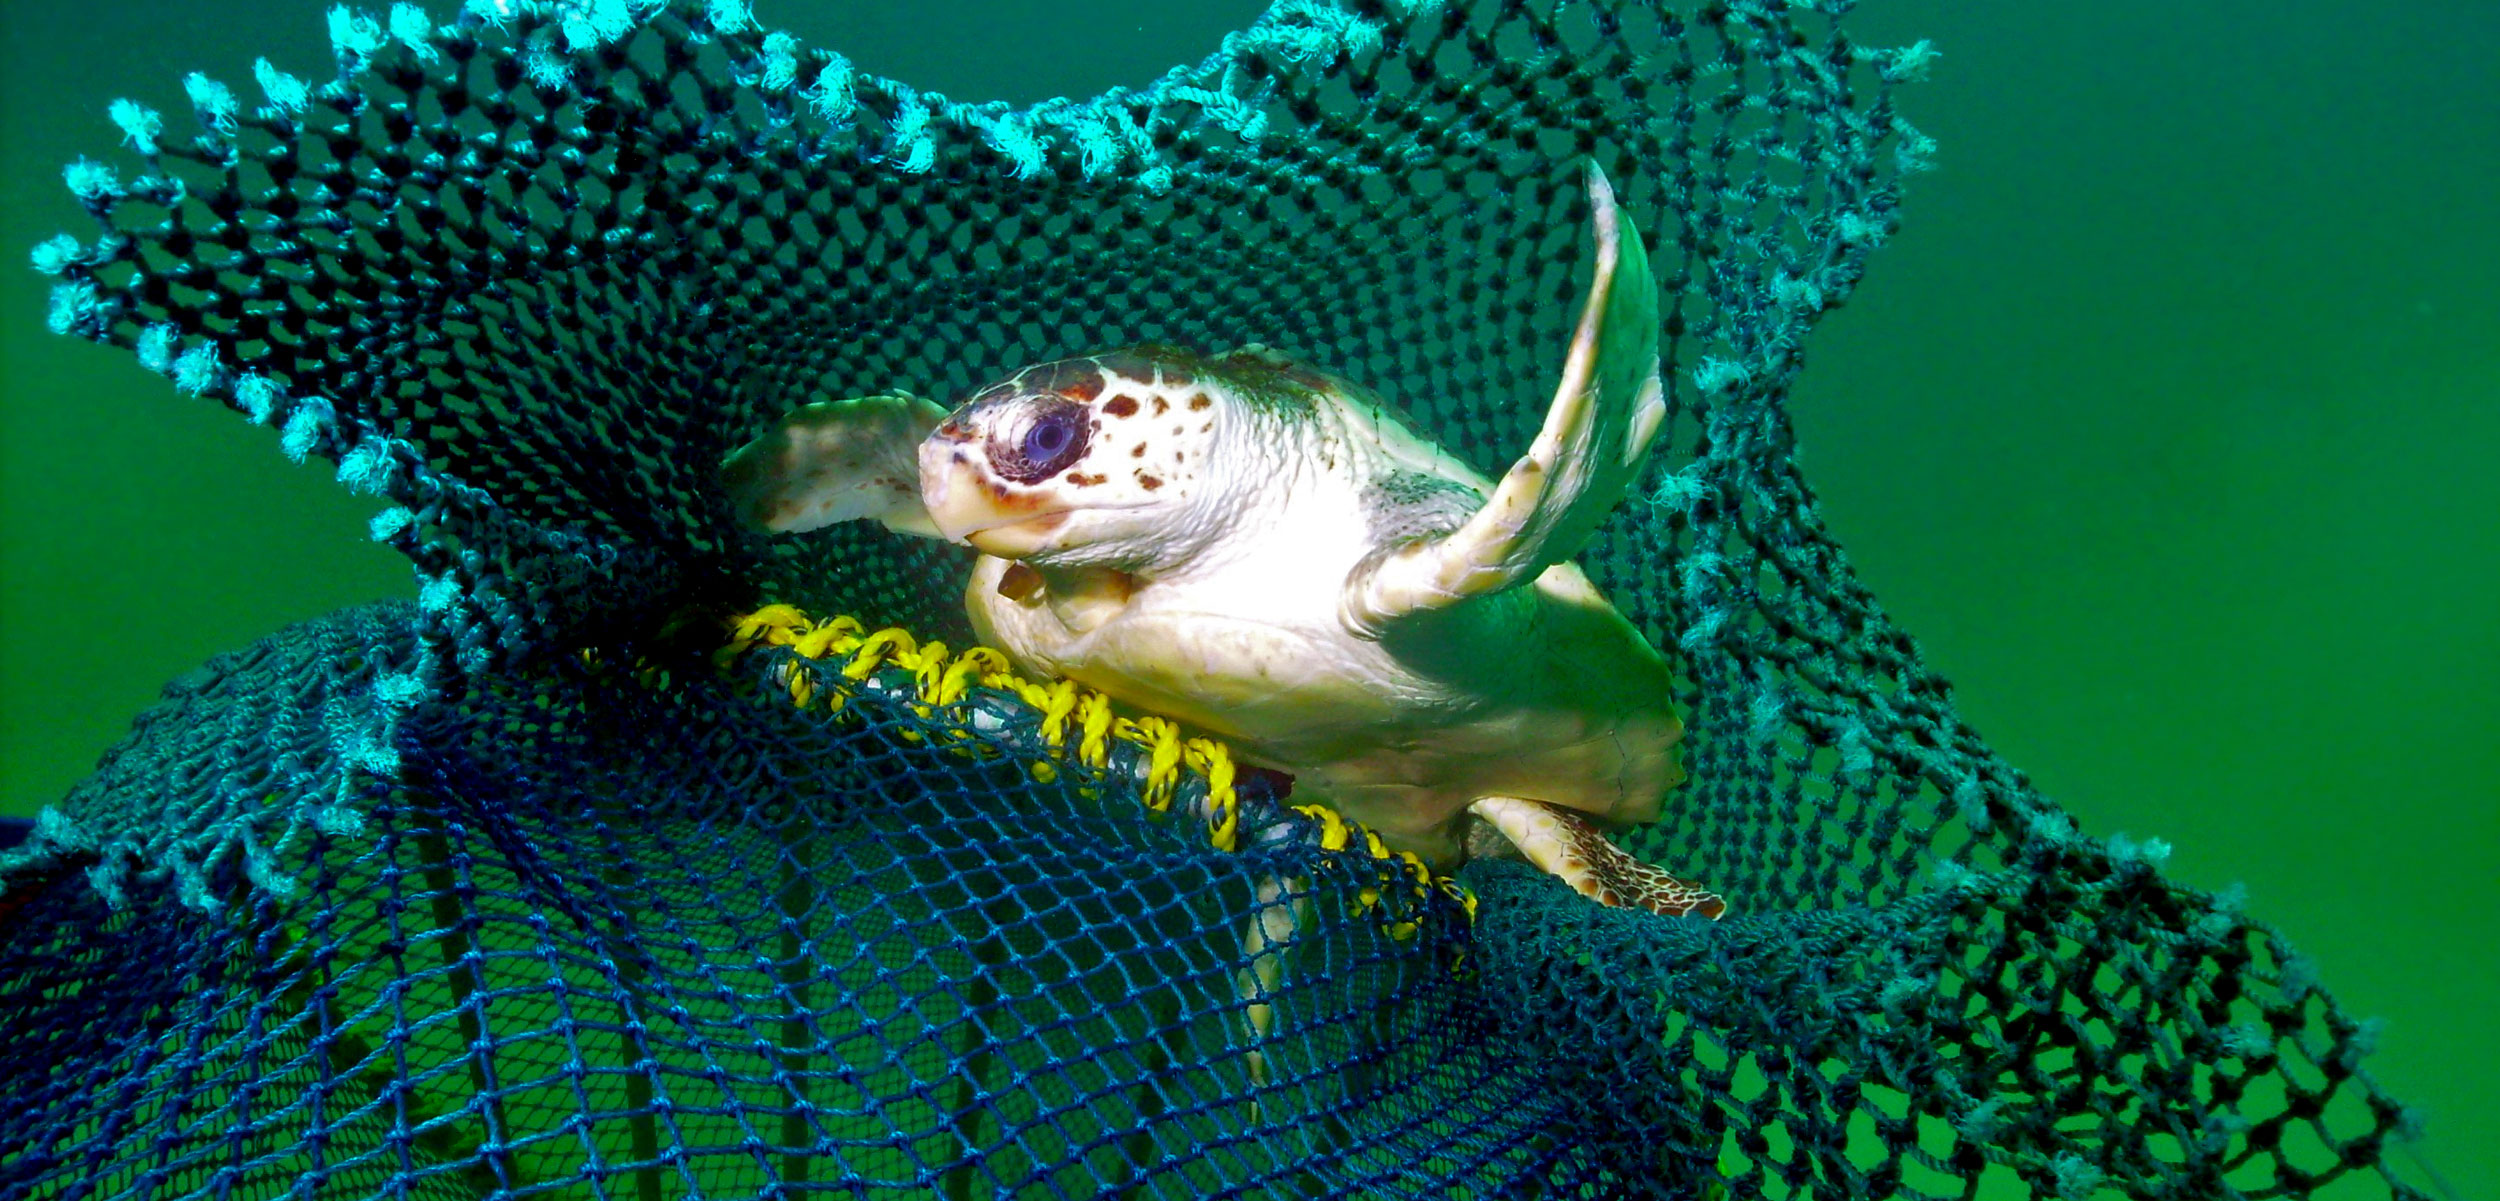 loggerhead turtle successfully escapes a net with a turtle excluder device installed